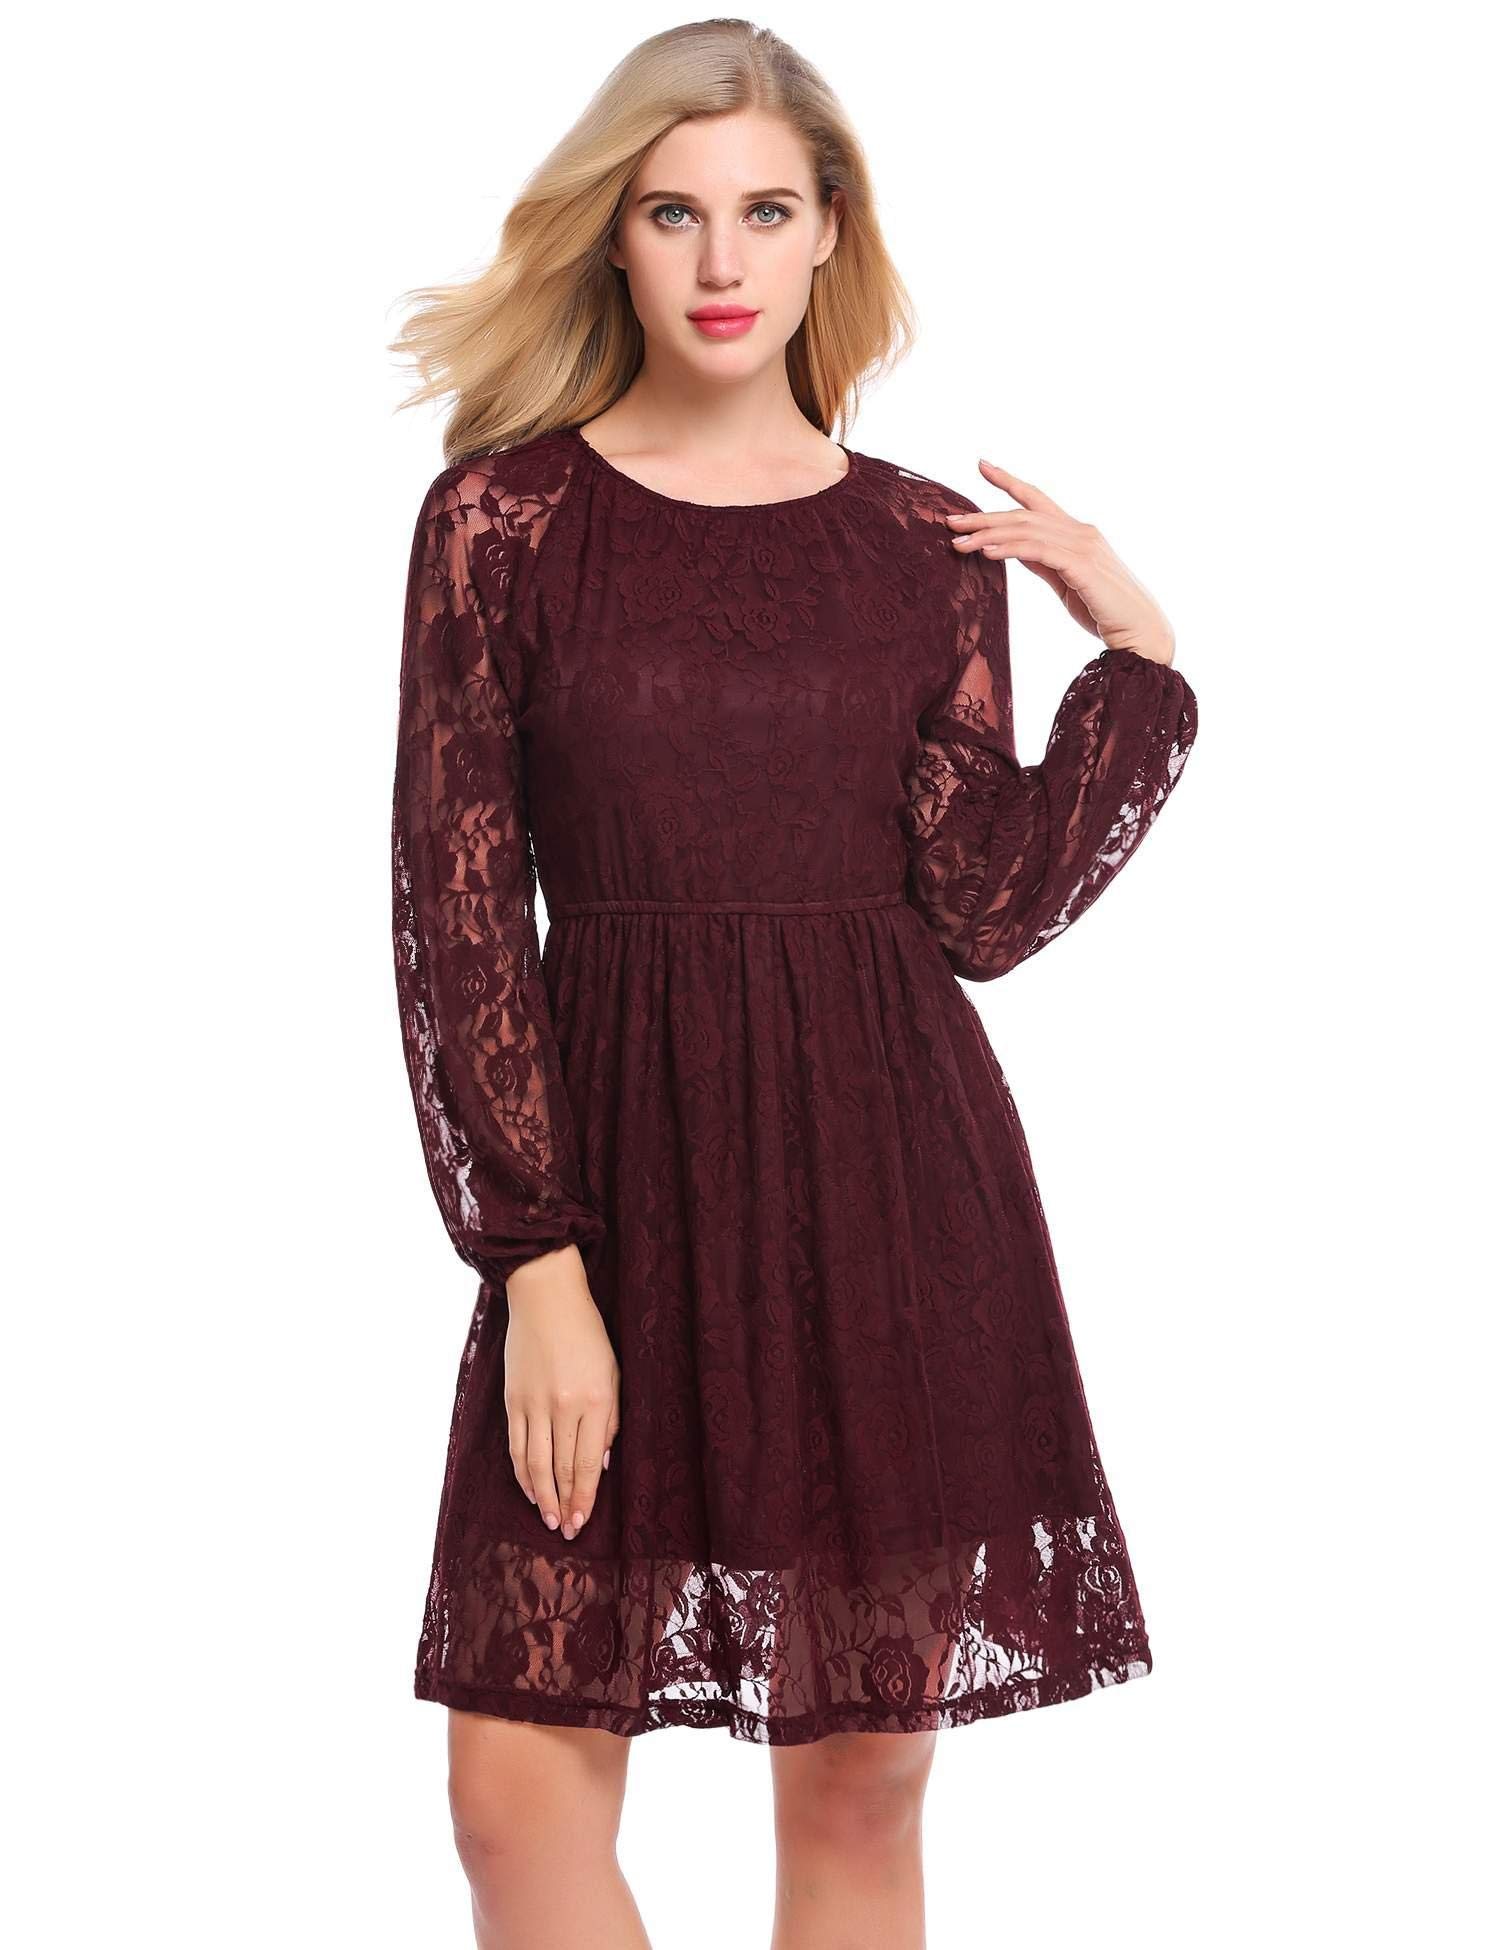 Meaneor Women's Floral Lace Long Sleeve A-Line Cocktail Party Dress